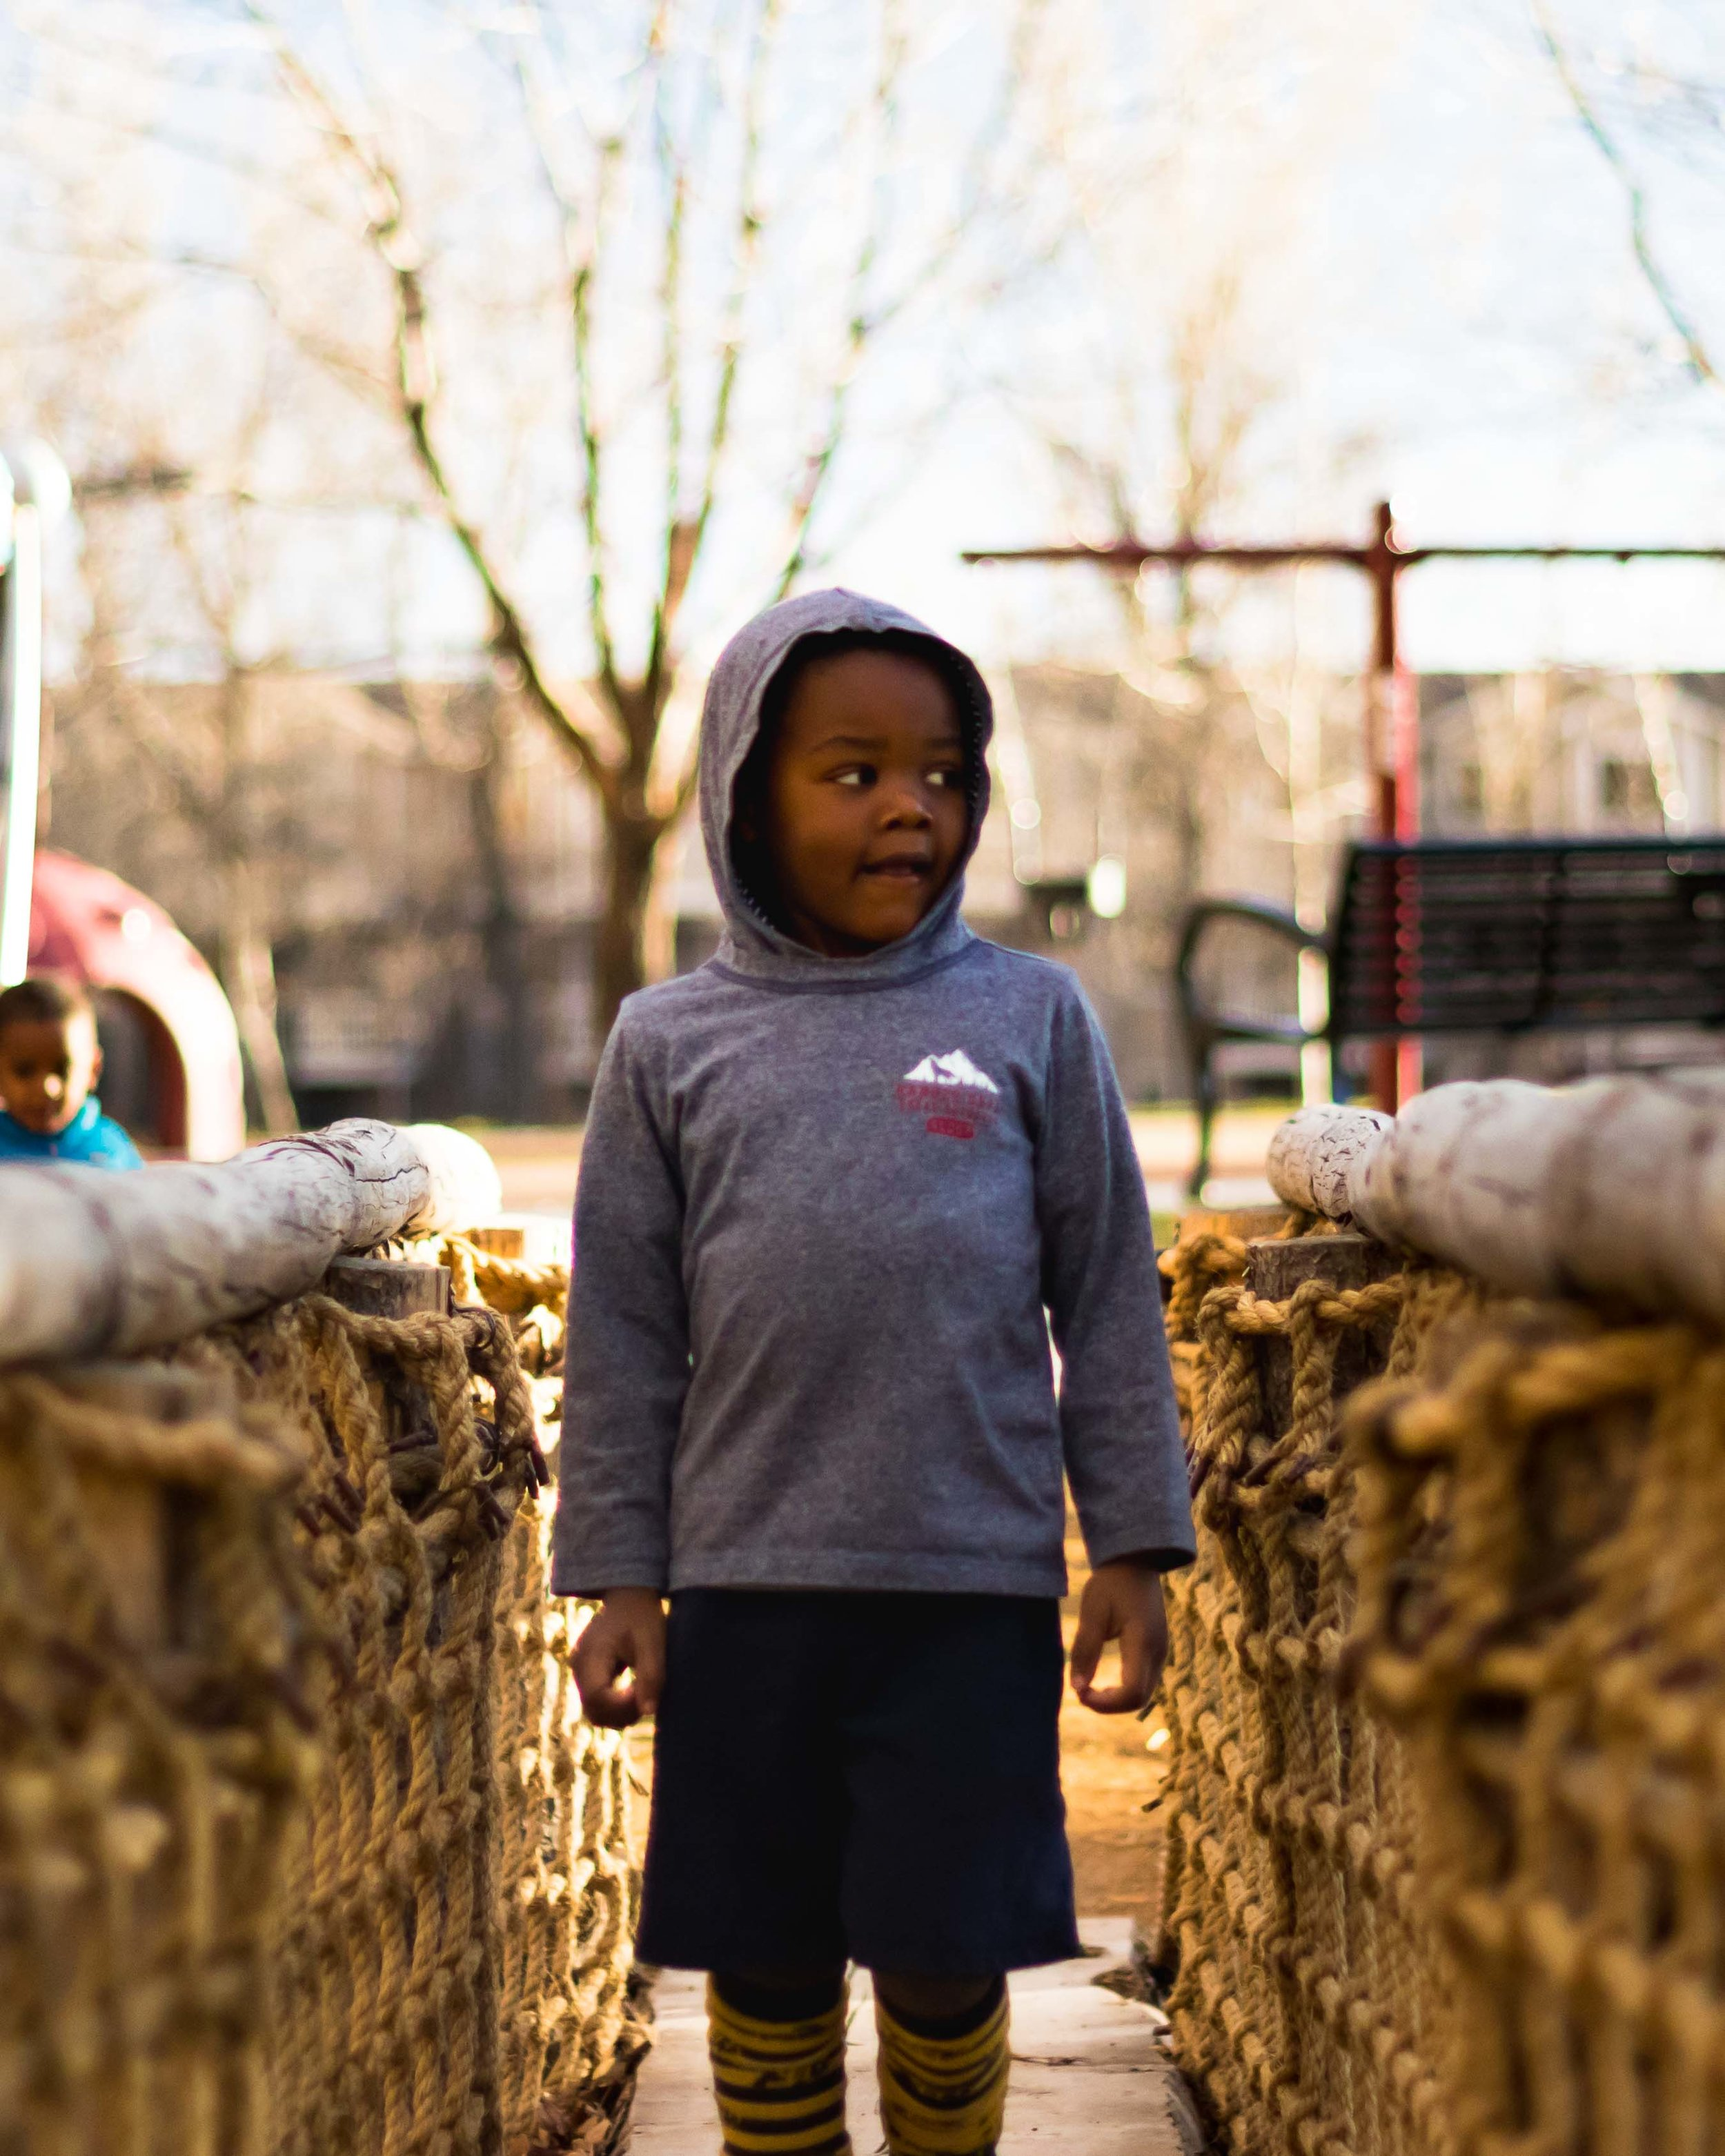 A Boy Stands on a Bridge to Adventure